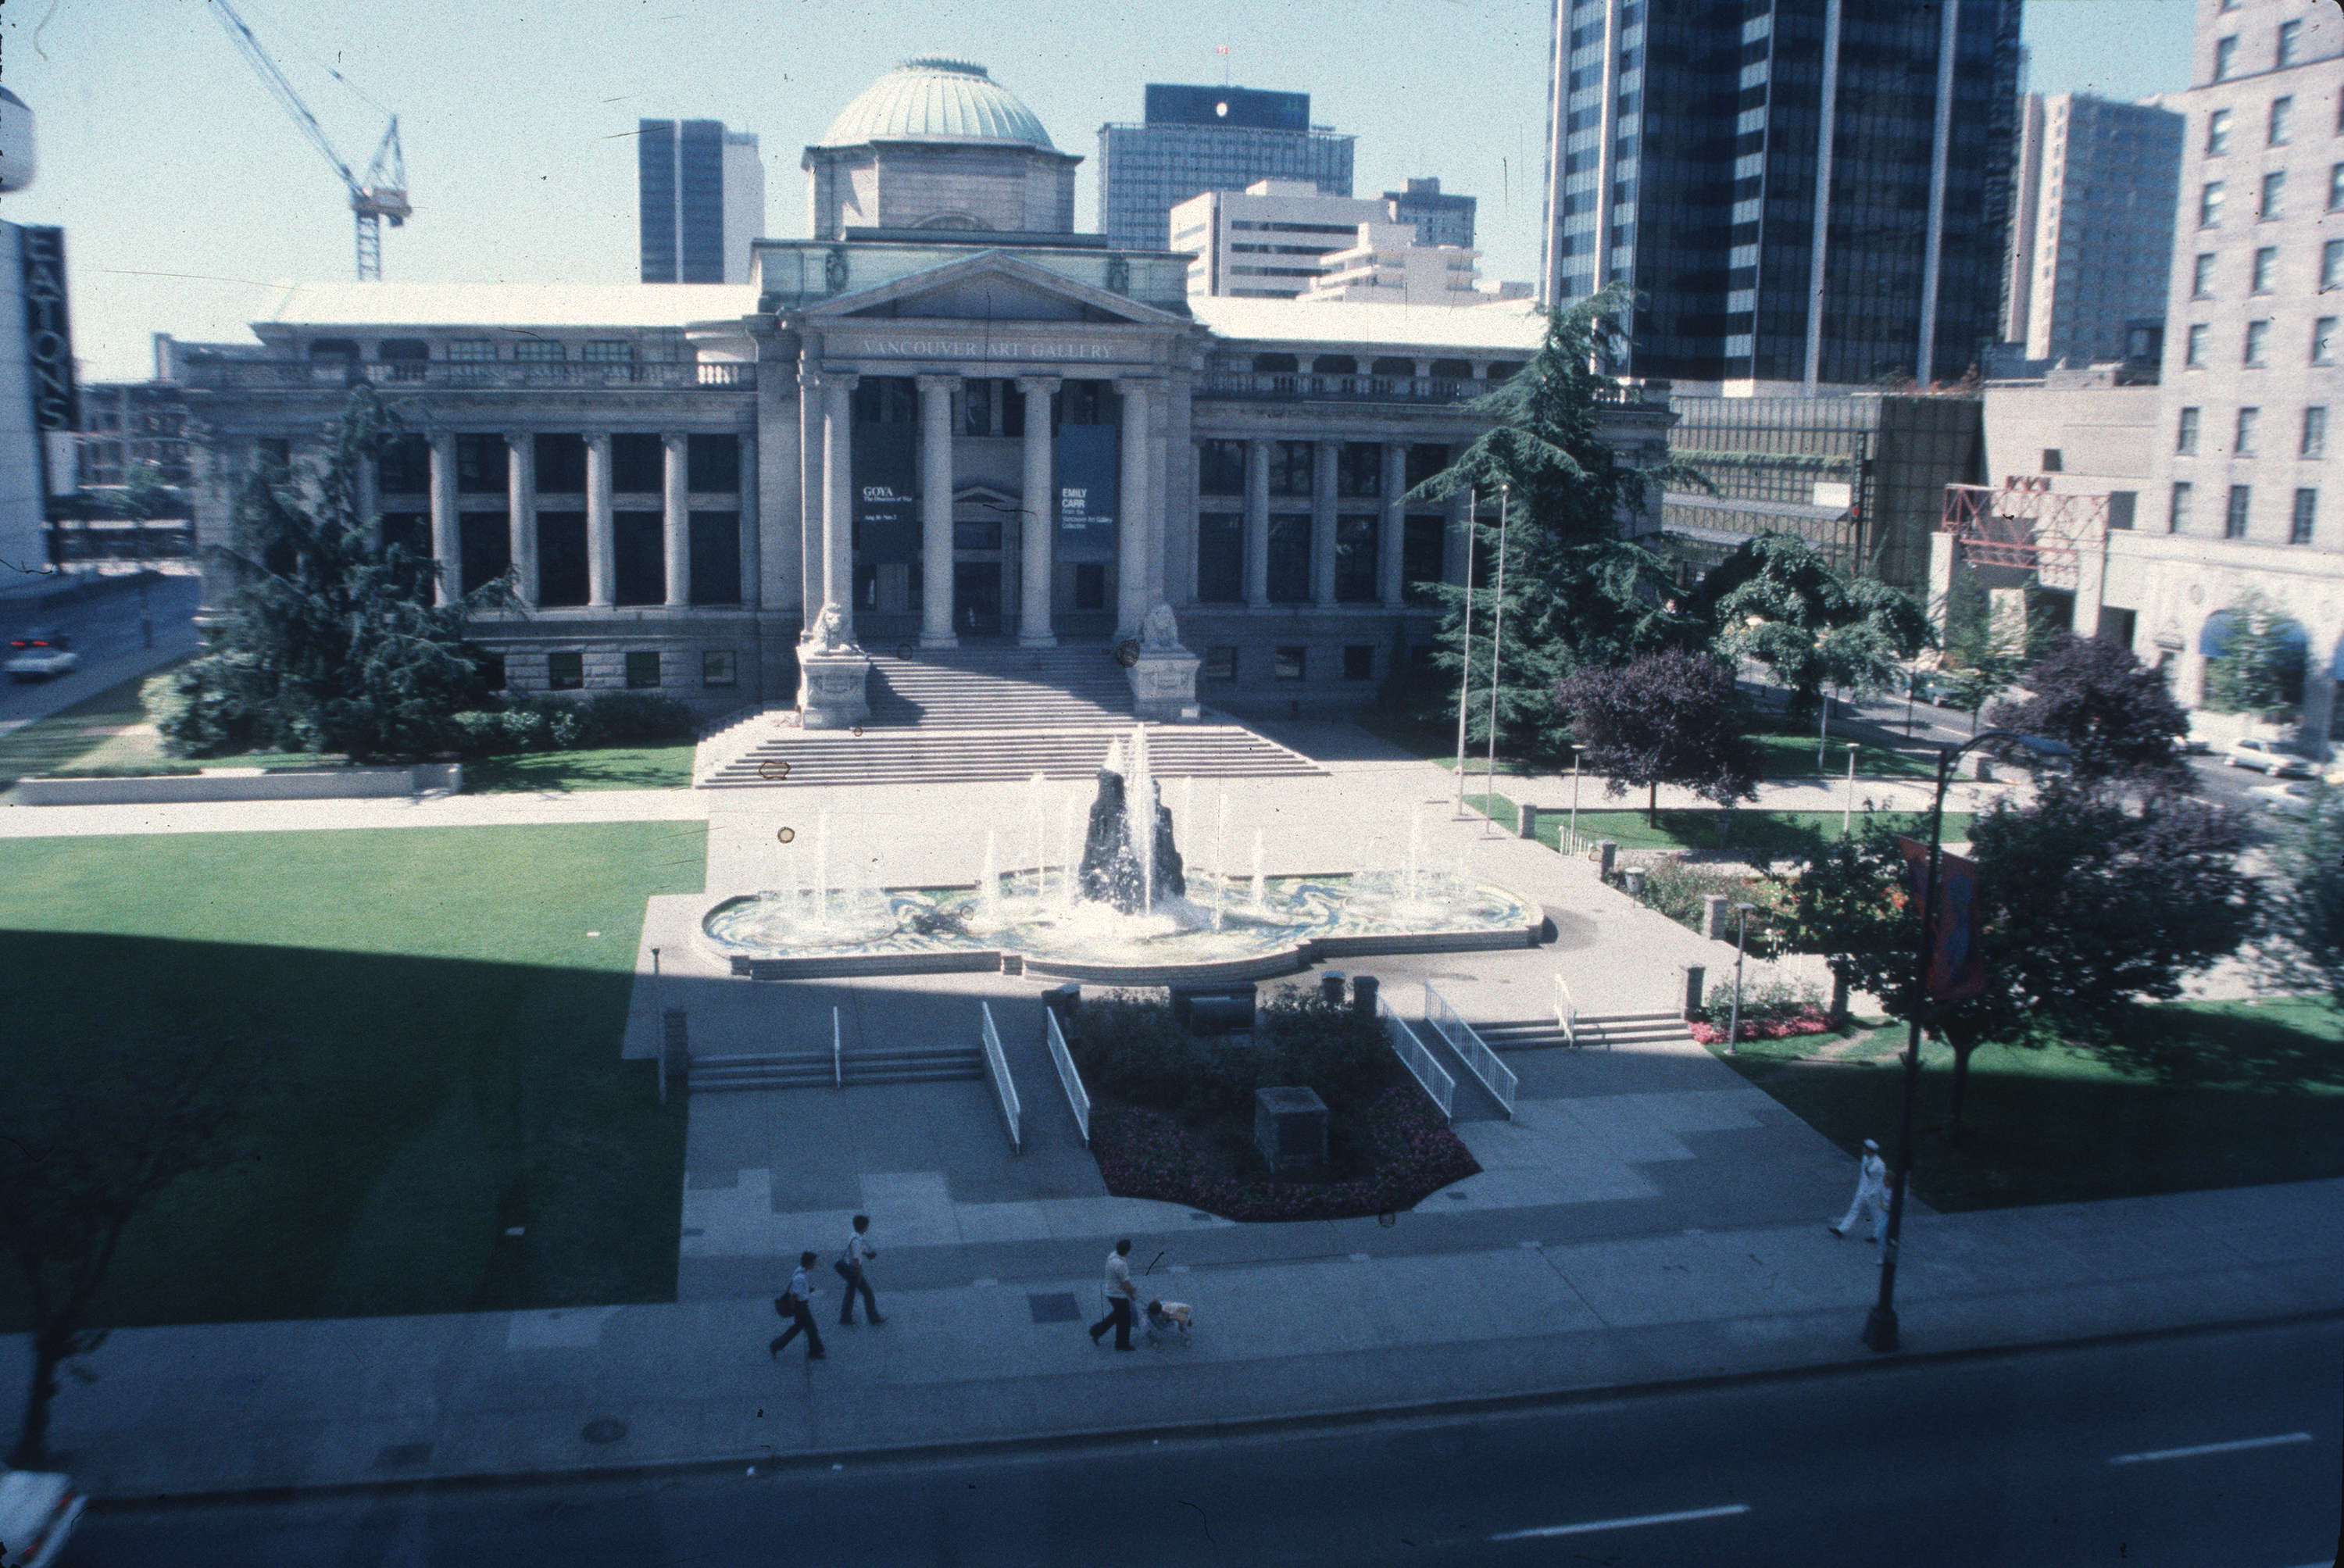 Vancouver Art Gallery plaza in 1986 (Vancouver Archives)